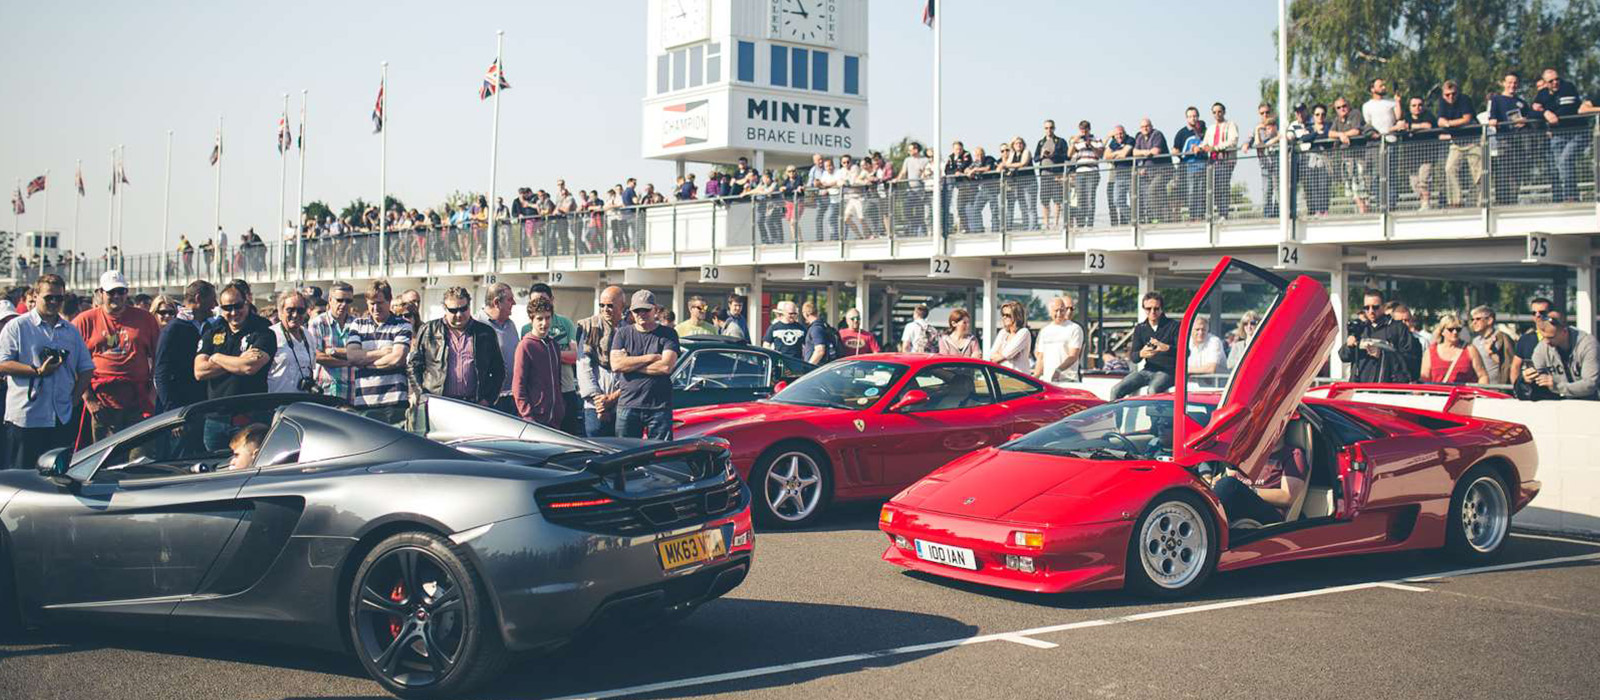 Goodwood-Breakfast-Club-Saxon-Insurance-Brokers-Luxury-Supercar-Brokers.jpg